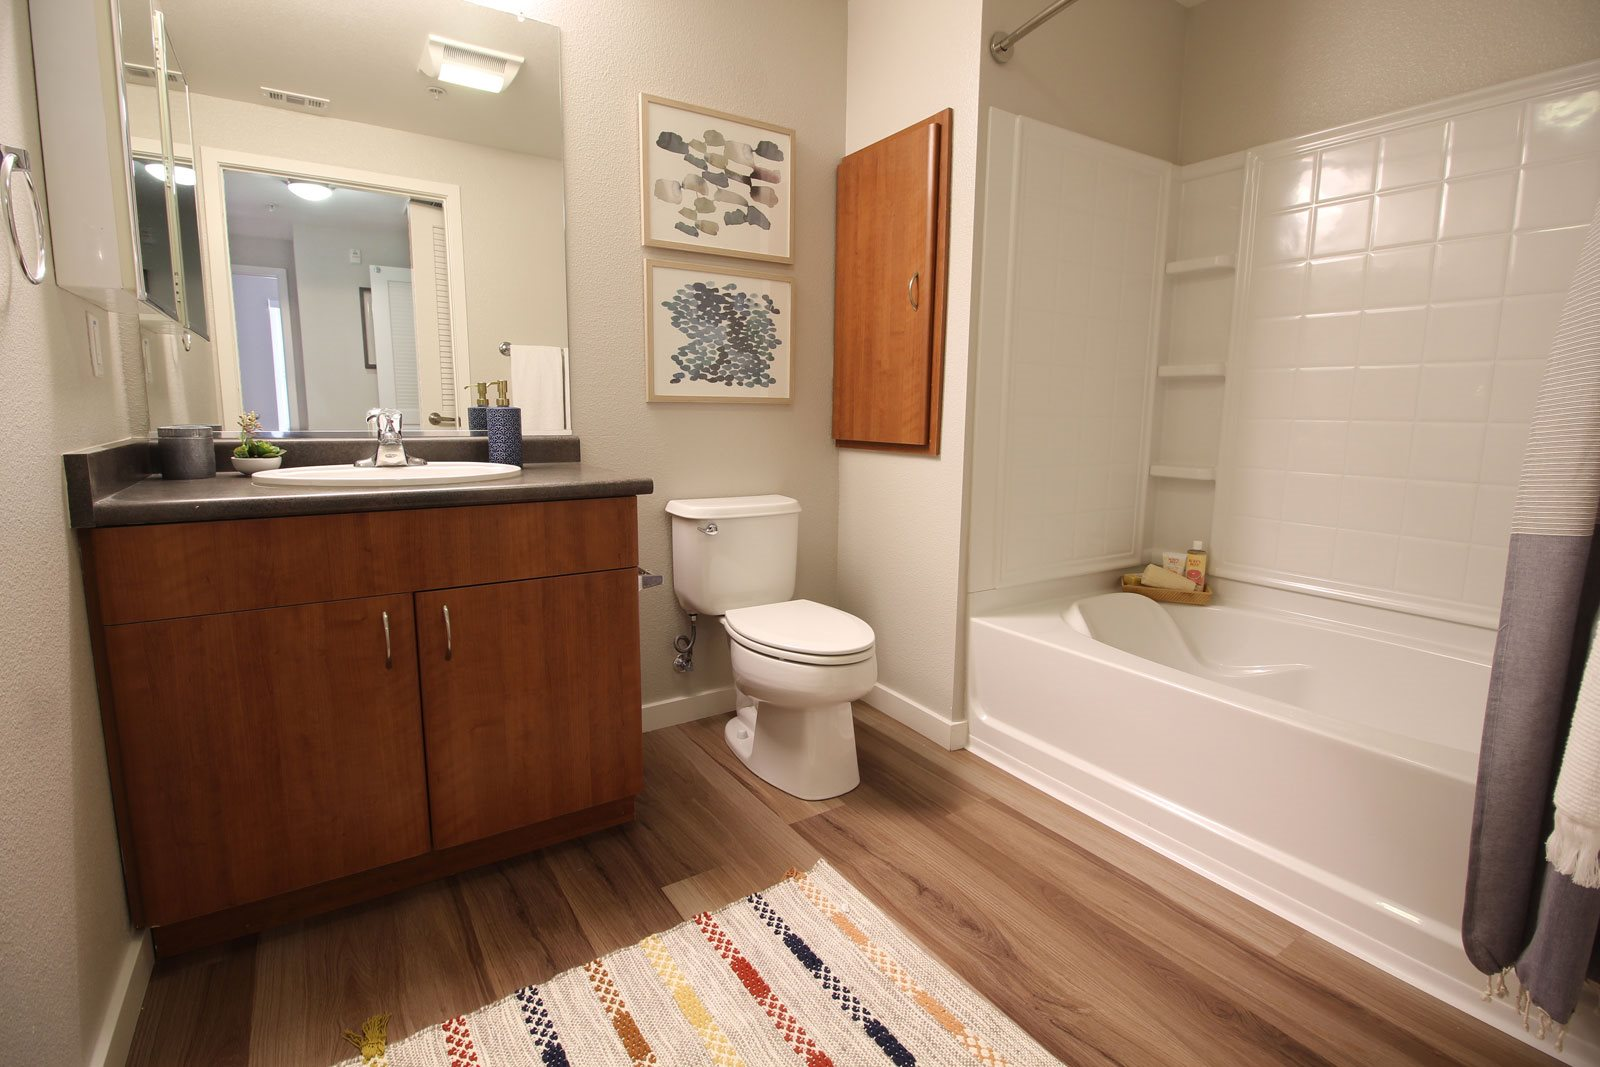 Spa-Inspired Bathrooms with Large Soaking Tub at Dublin Station by Windsor, 5300 Iron Horse Pkwy, Dublin